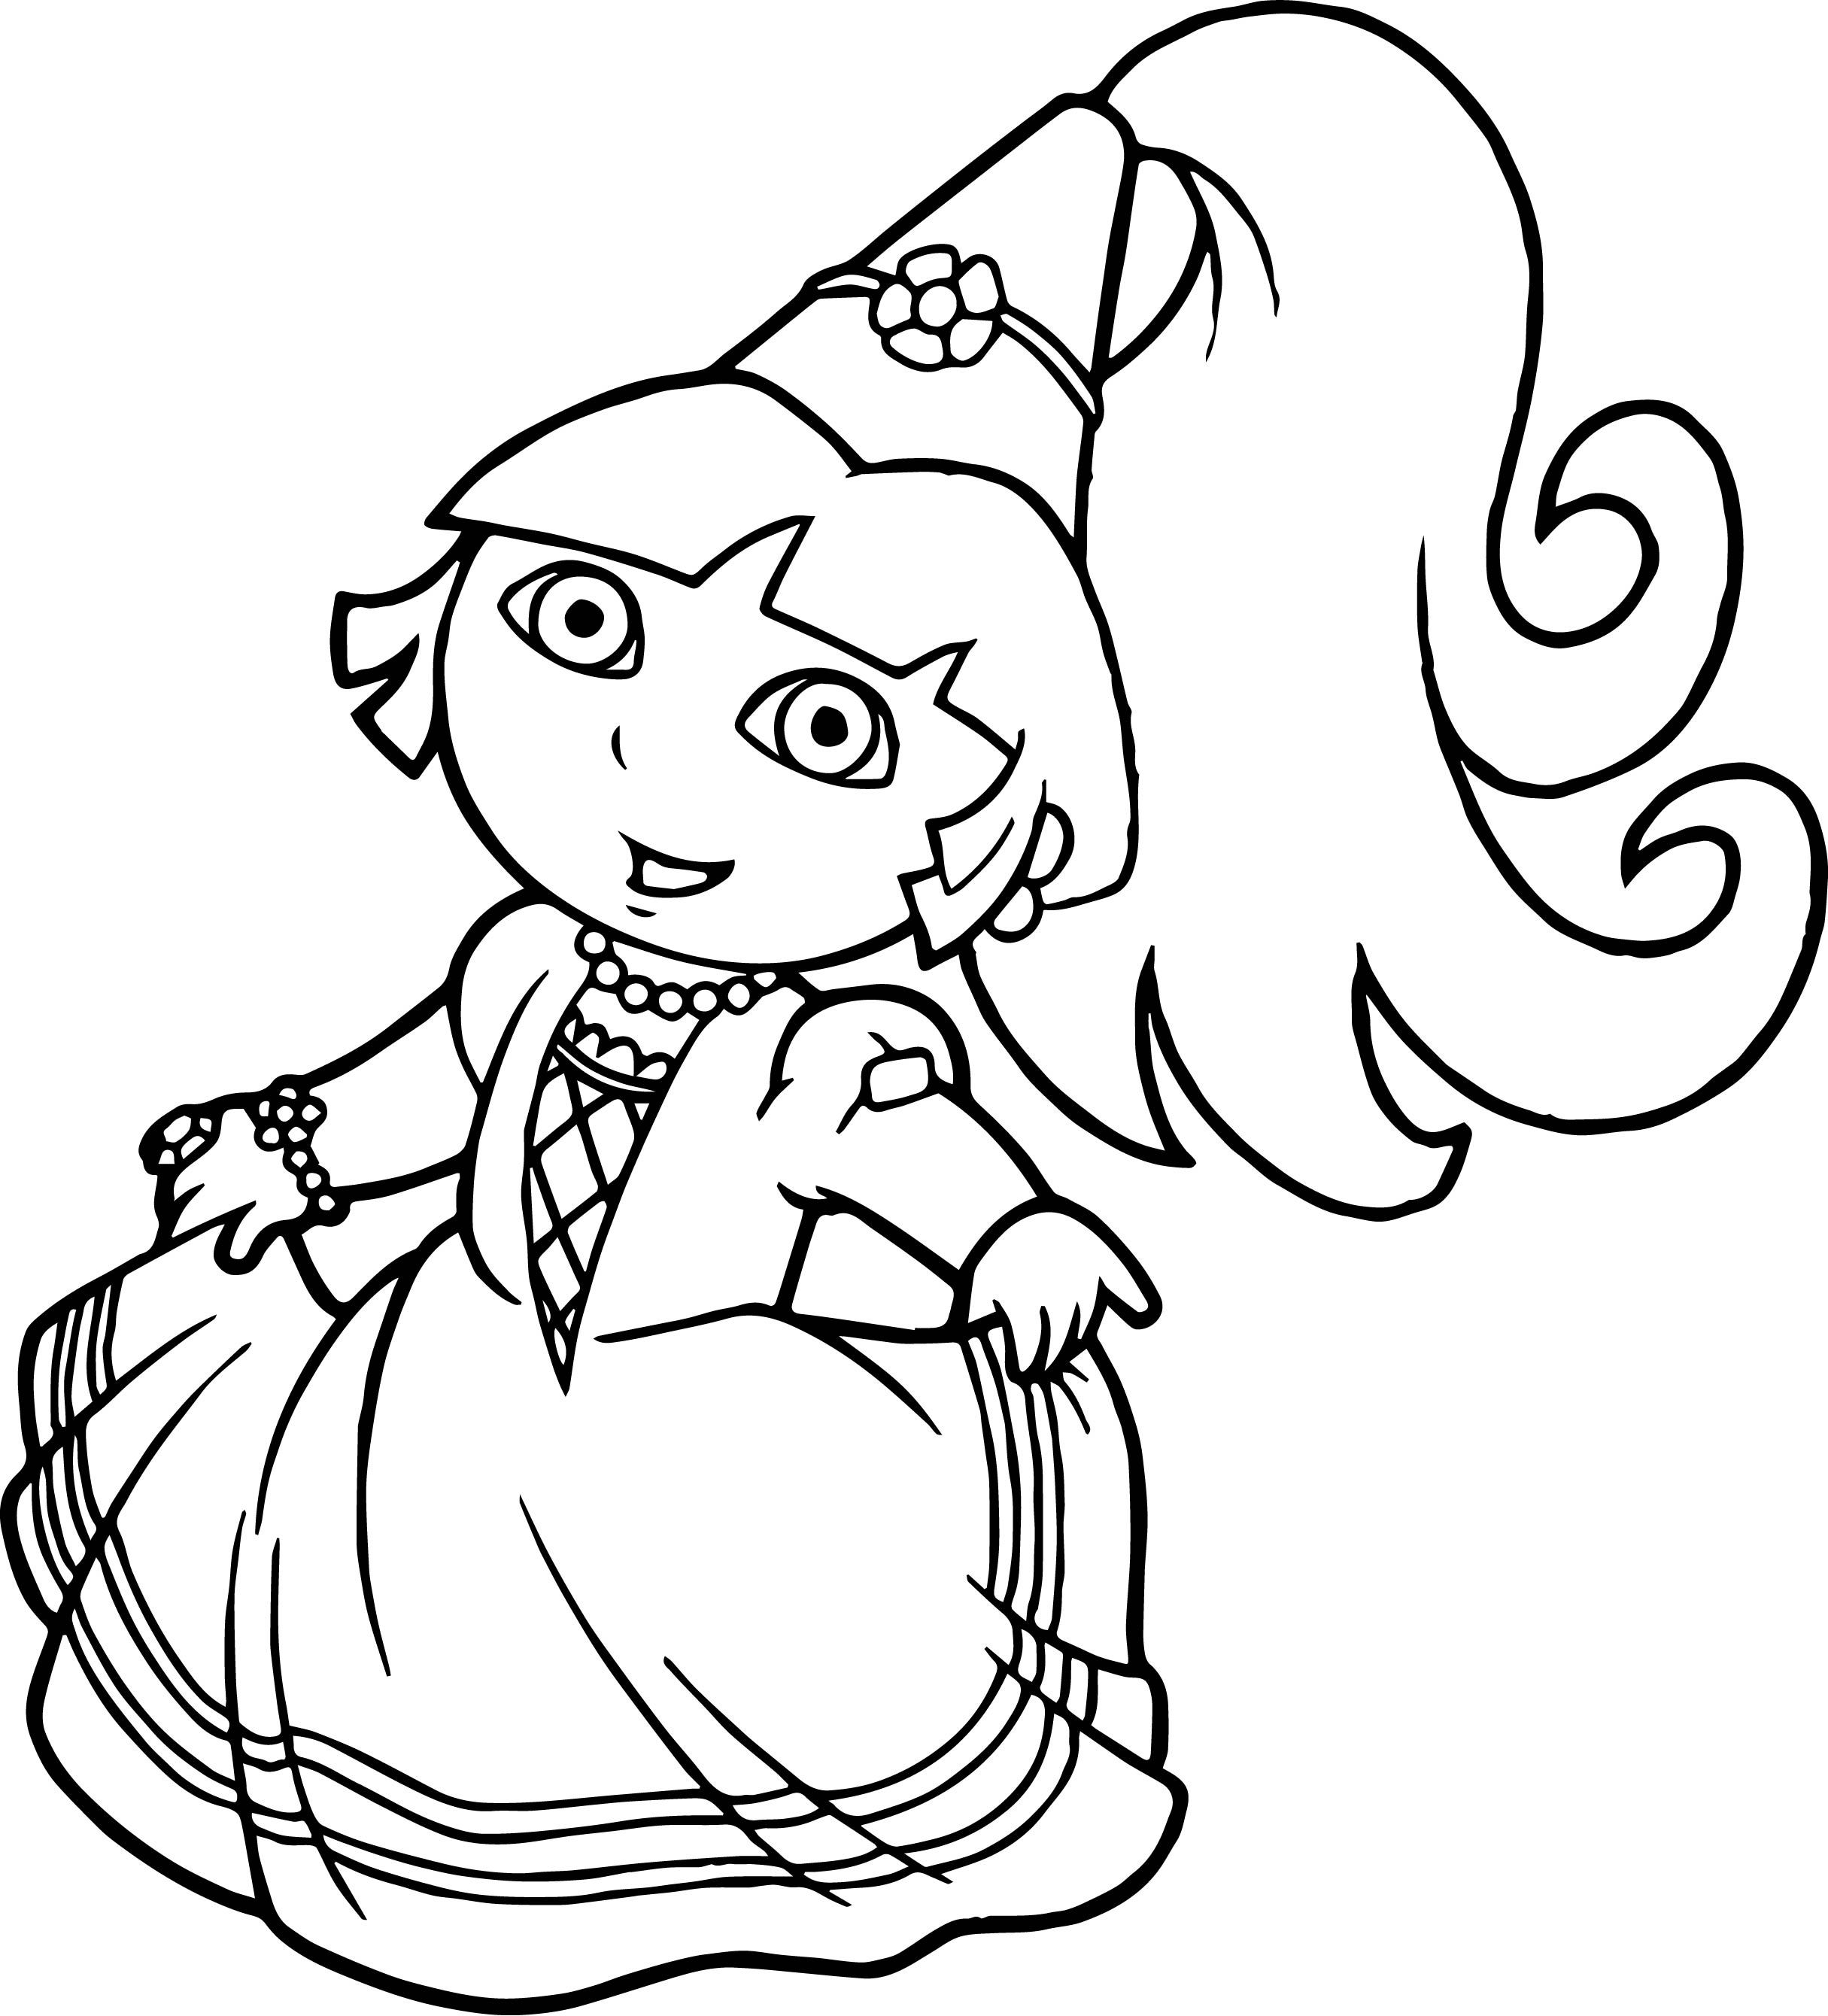 free coloring pages dora dora coloring lots of dora coloring pages and printables pages dora coloring free